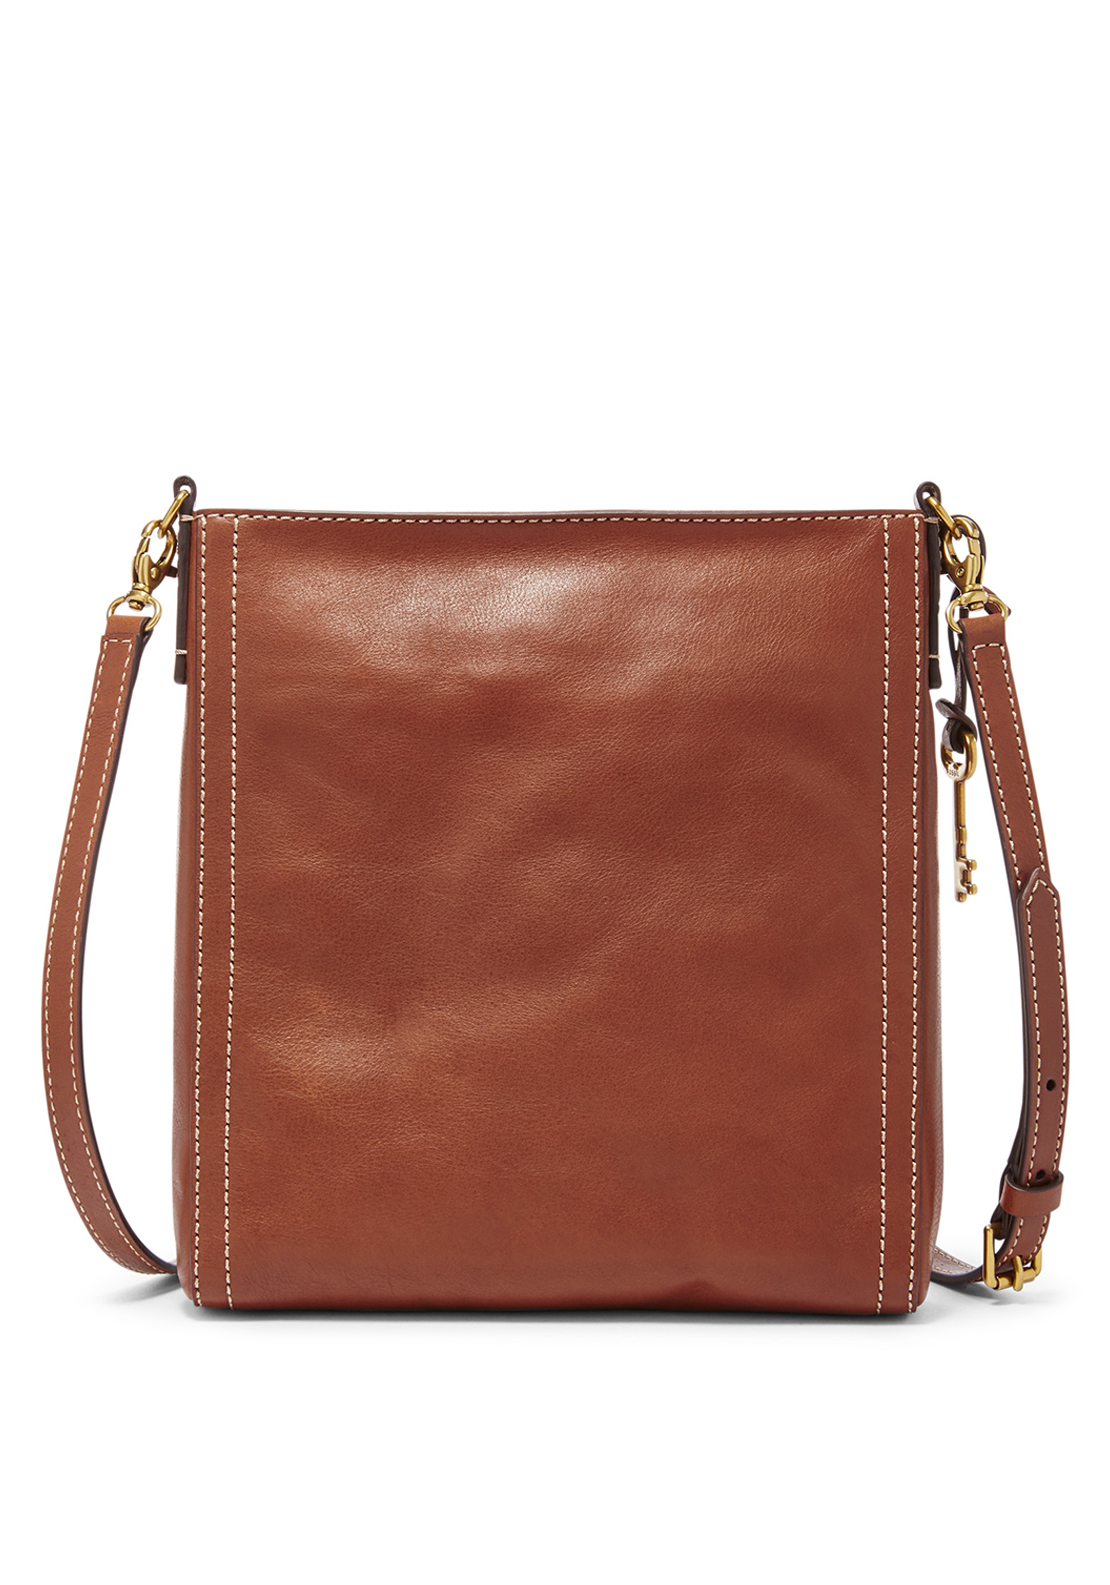 Fossil Emma Leather Crossbody Bag, Brown